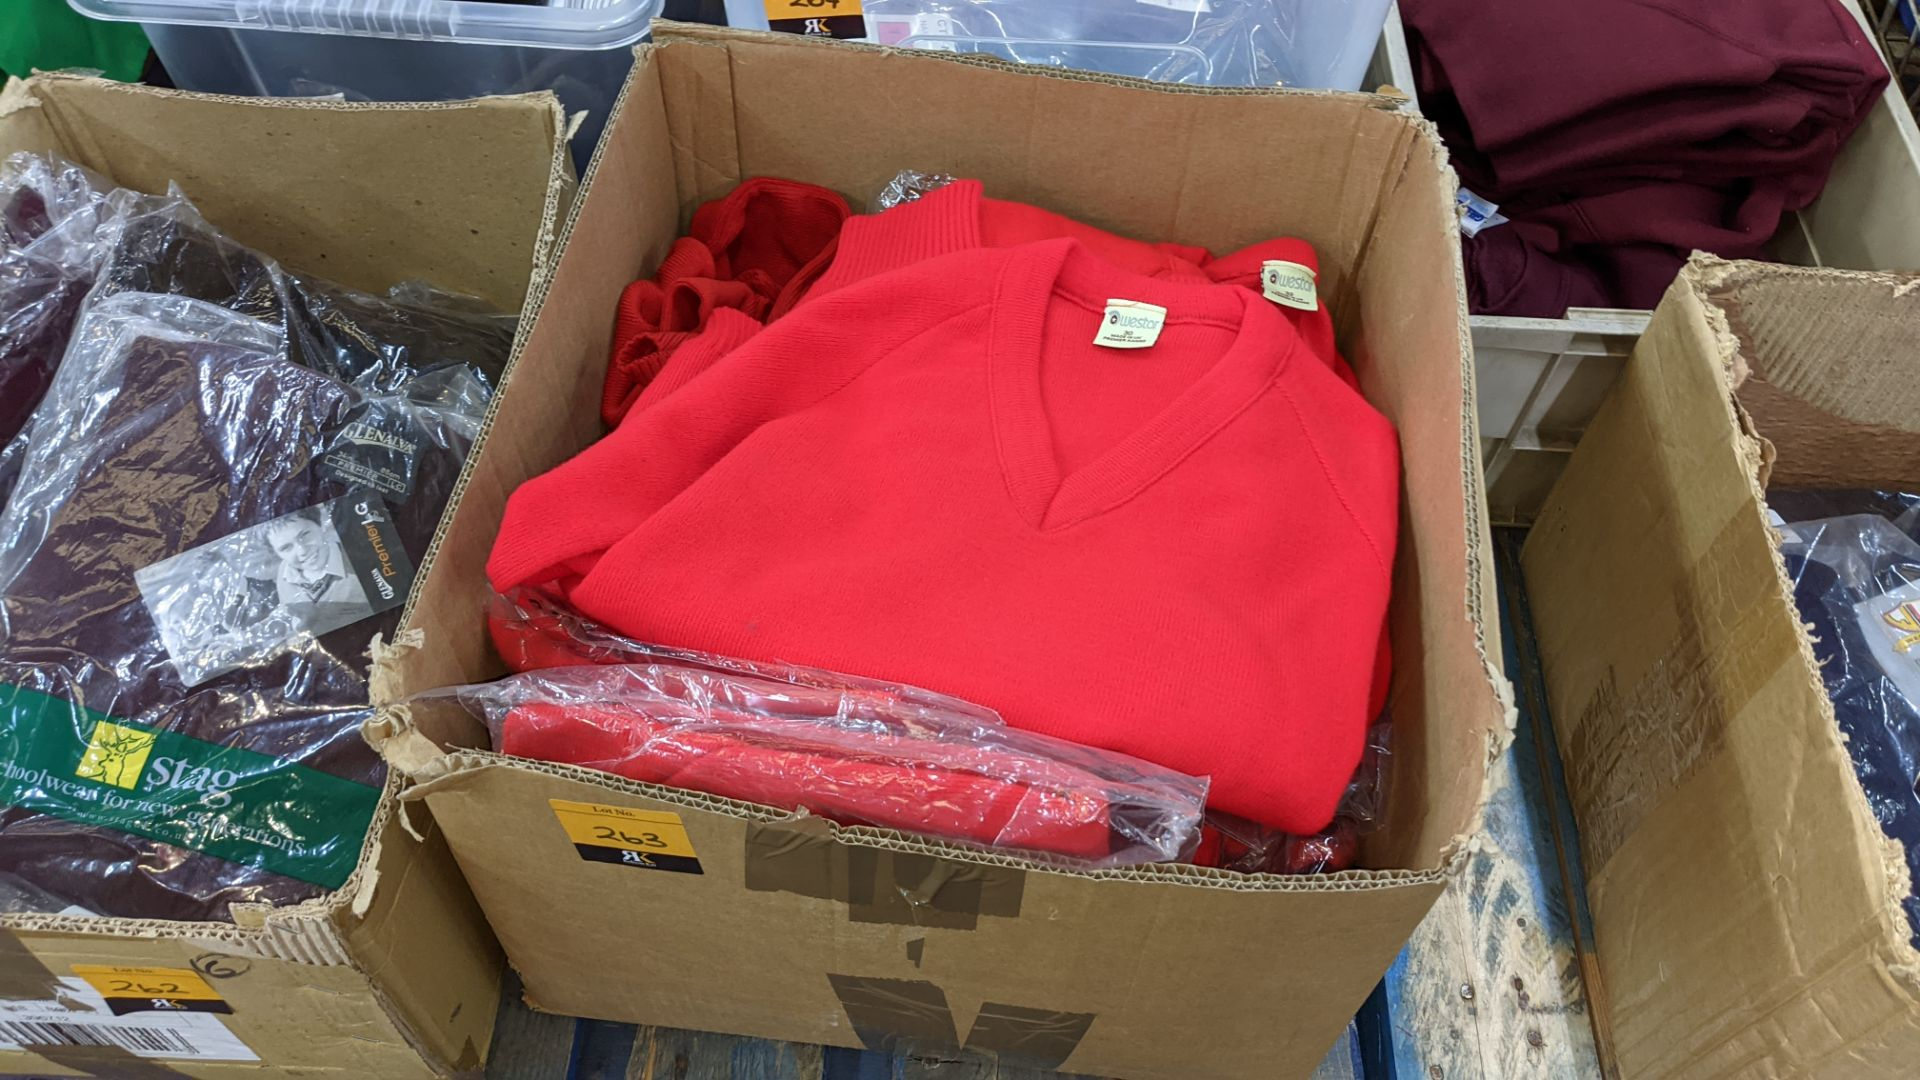 Approx 17 off children's red knitted tops - the contents of 1 box